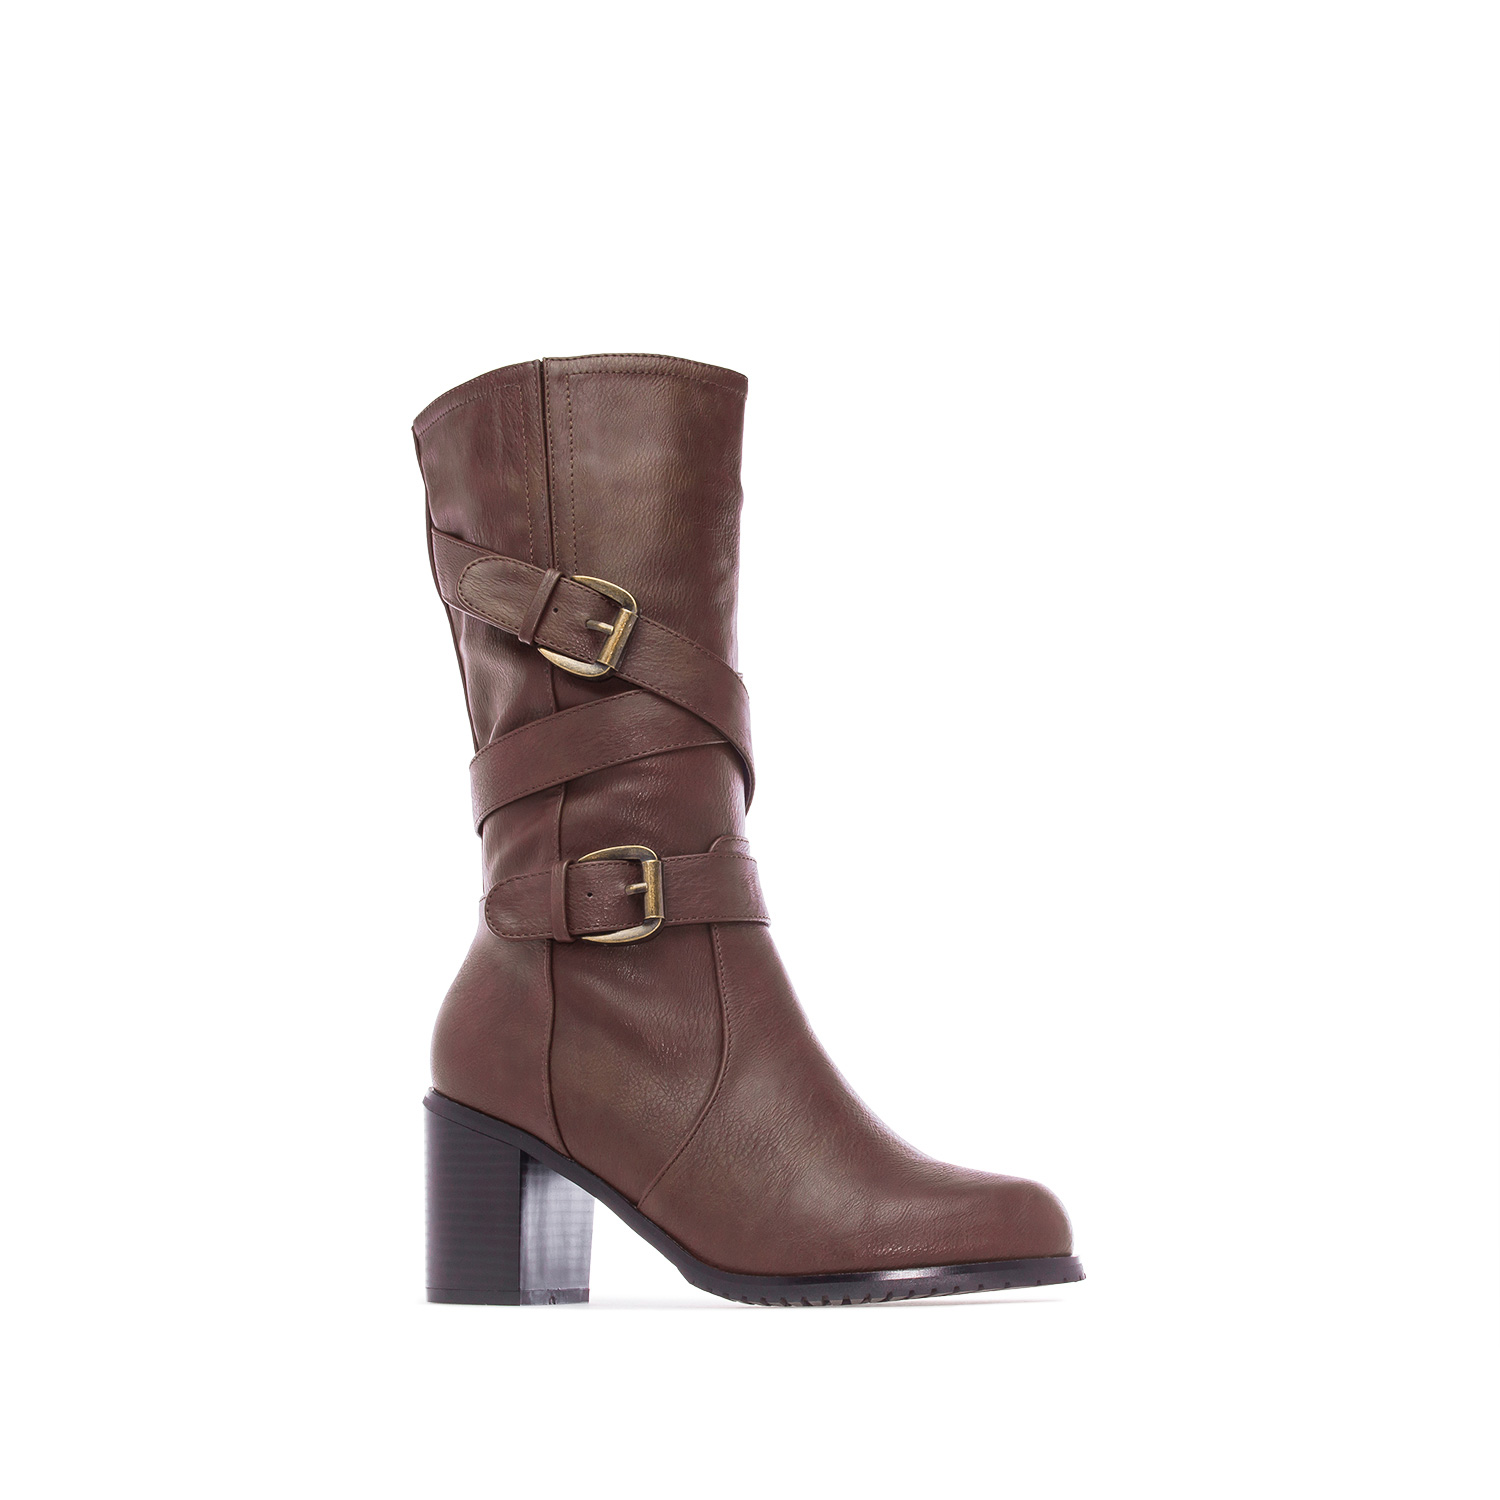 To acquire How to three wear quarter length boots pictures trends